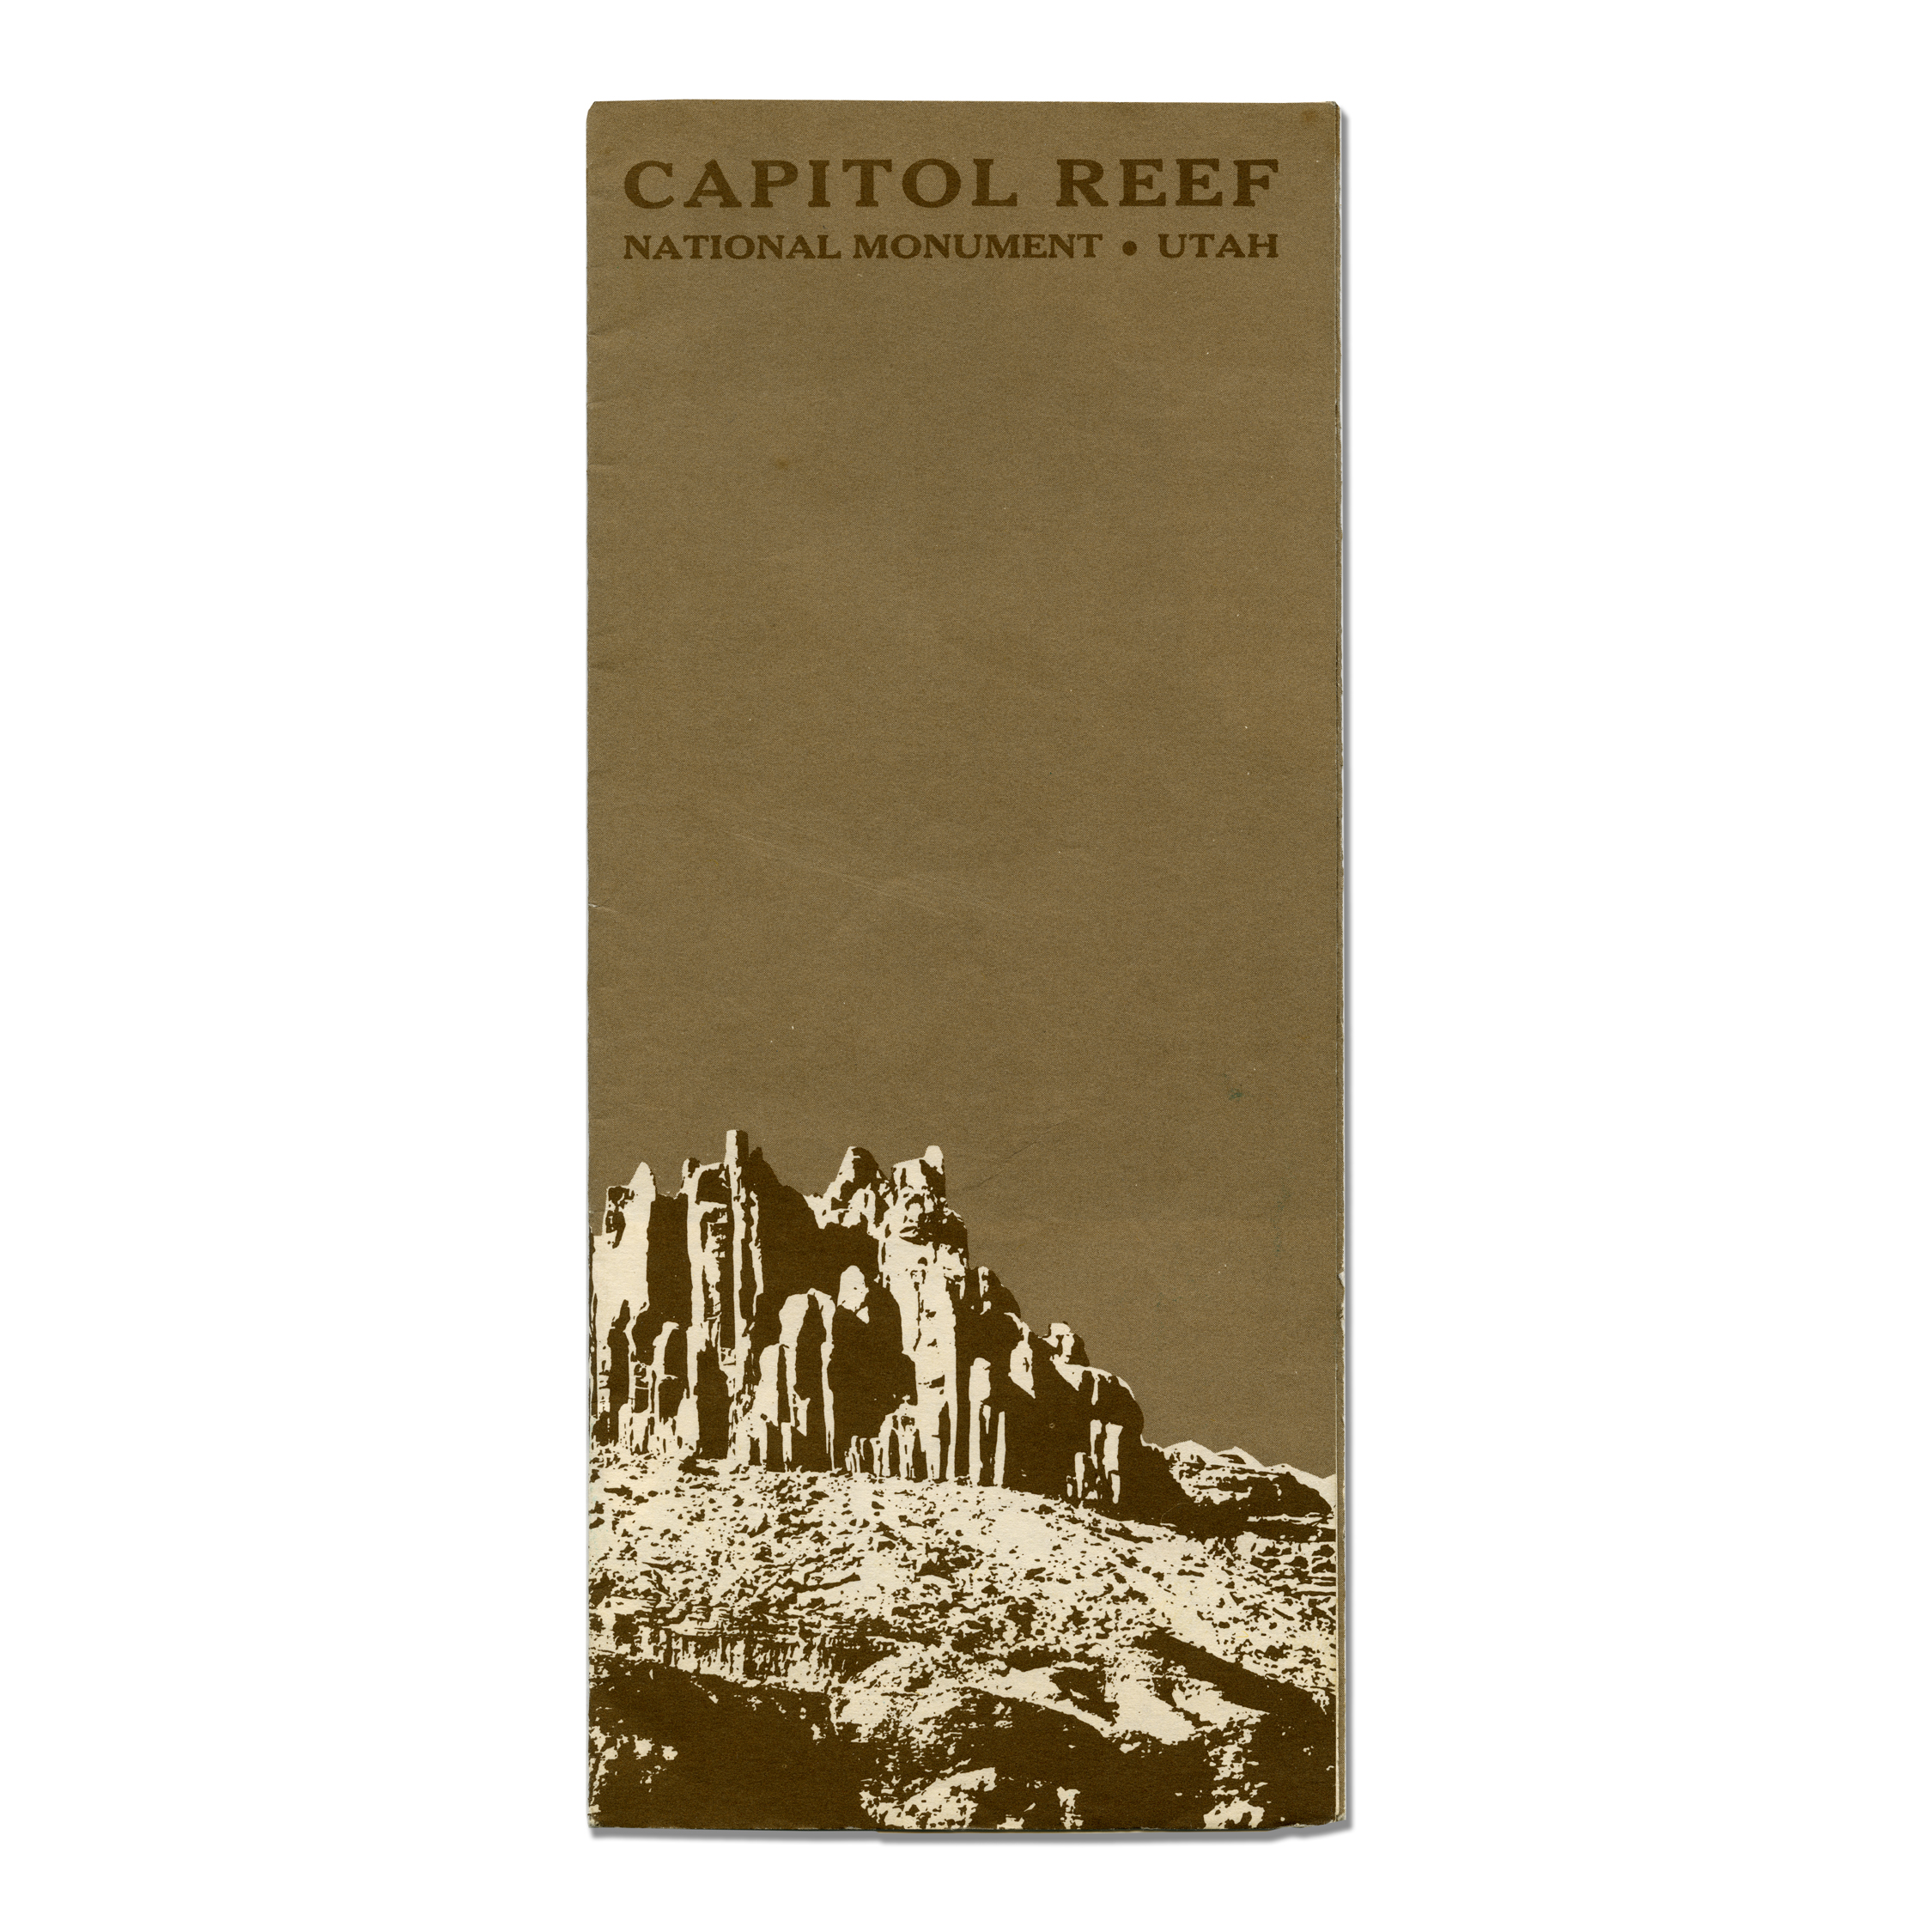 1965_capitol_reef_national_monument_brochure.jpg